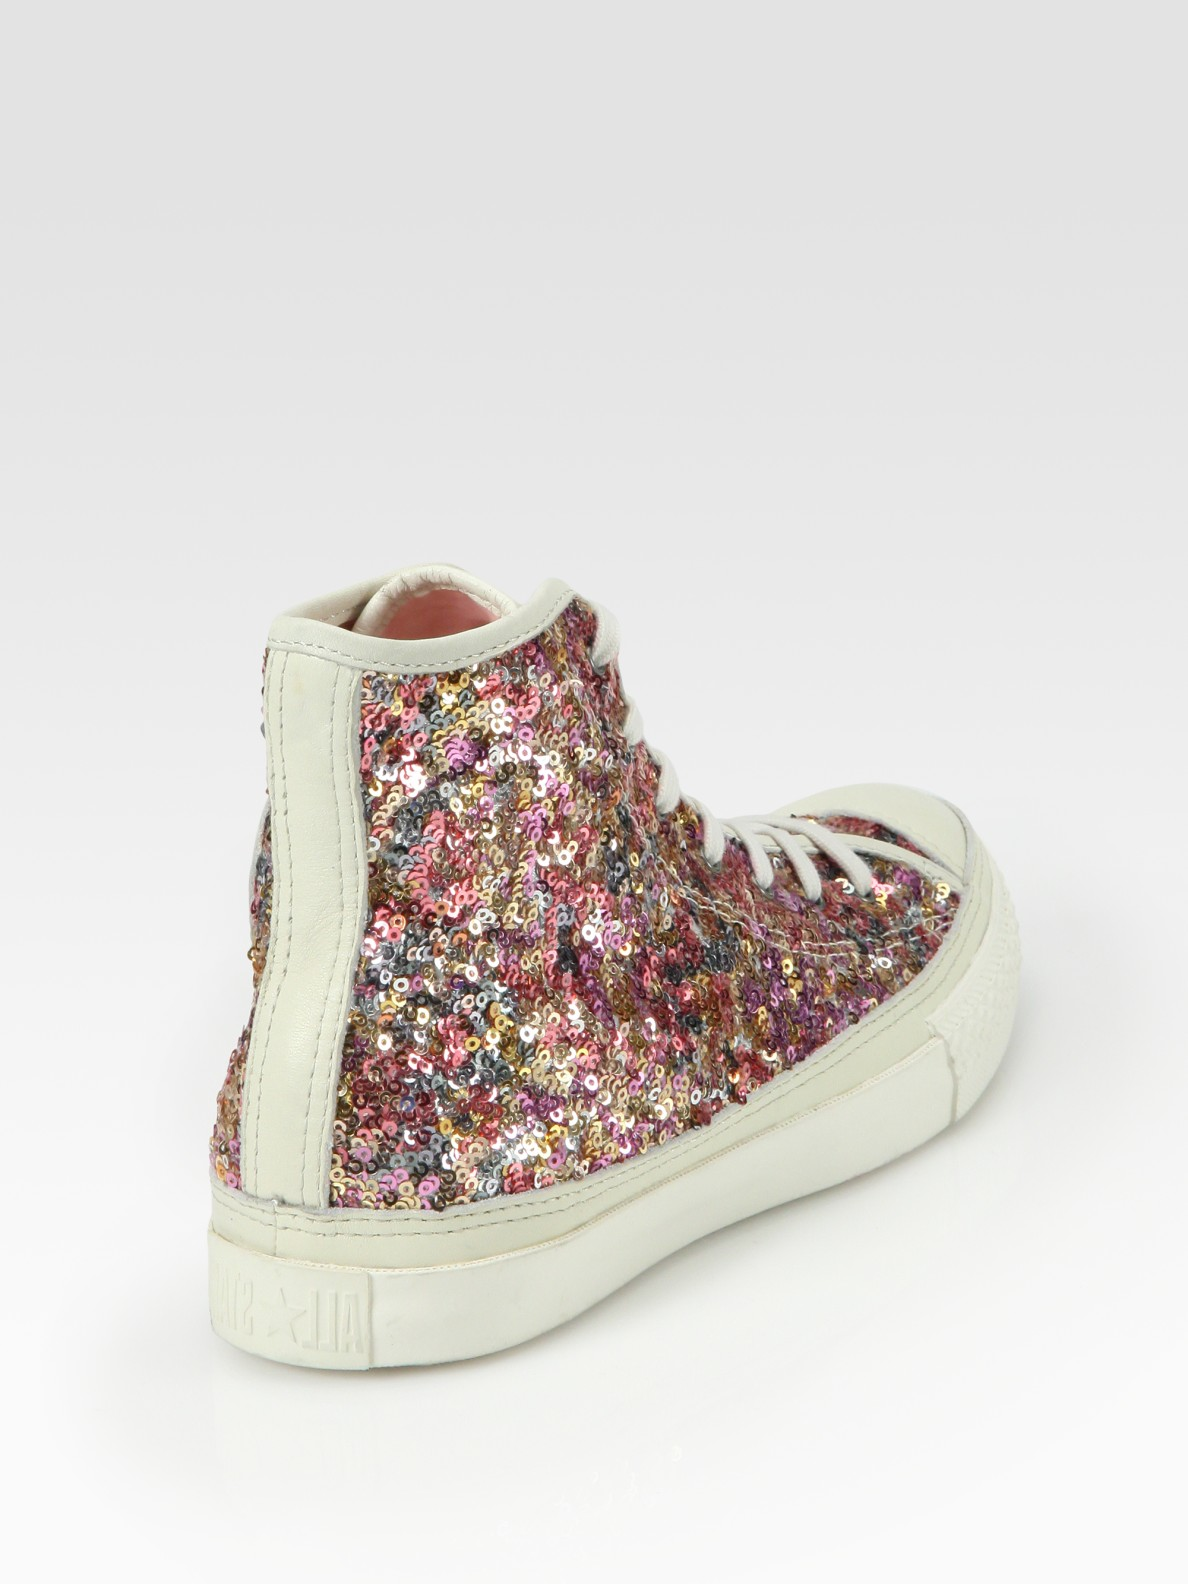 Lyst - Converse Sequin High-top Sneakers in Pink 7ac8f17a4